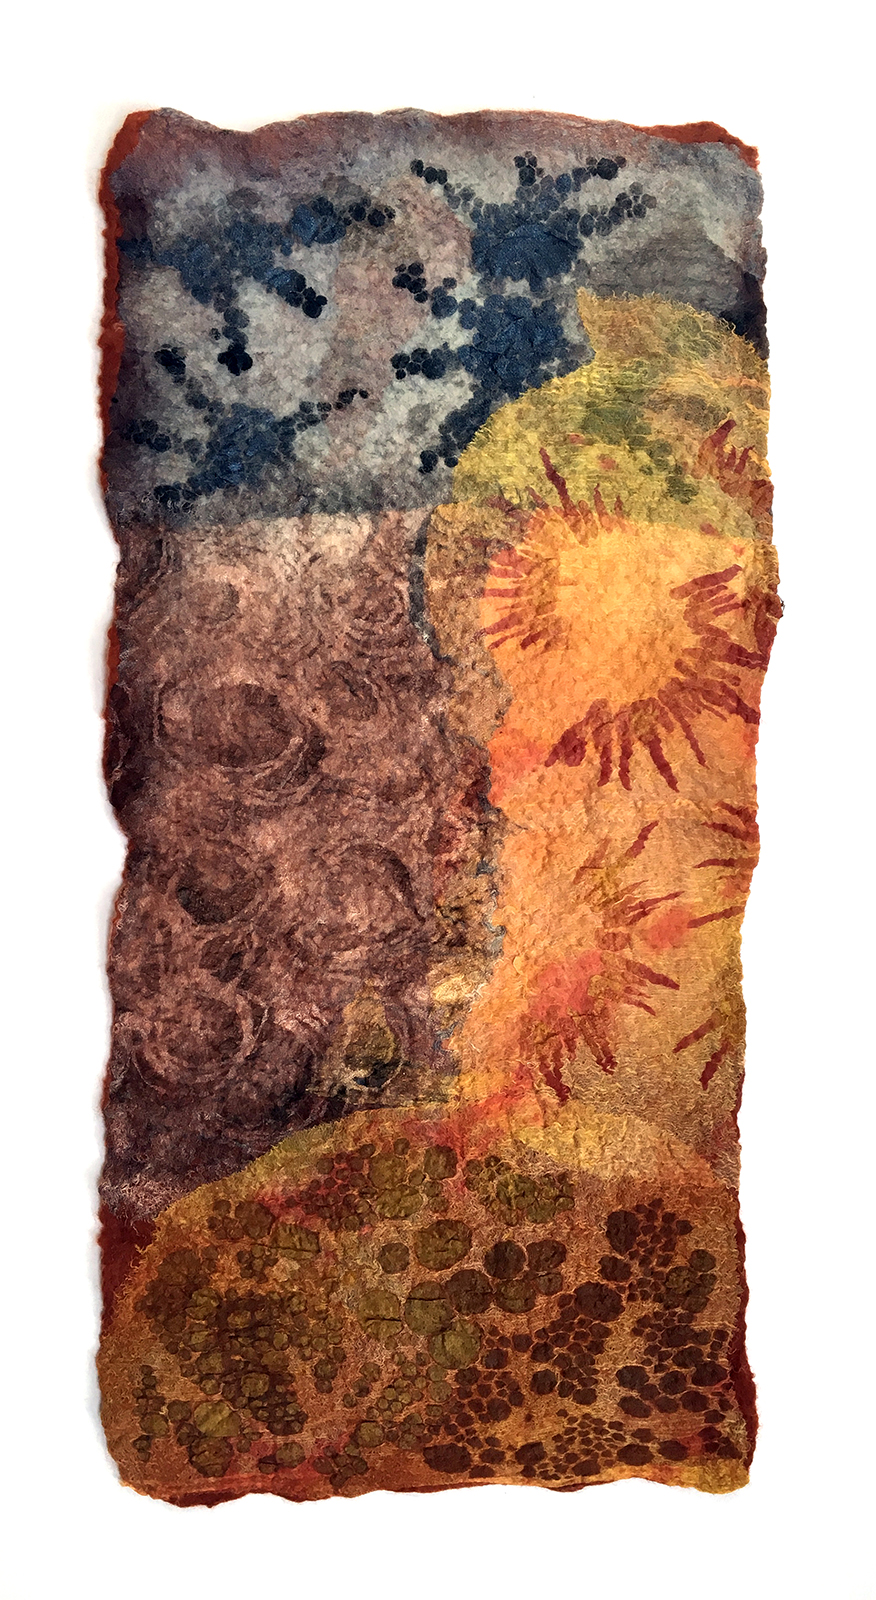 Soil 1 by Melanie West, 2019 wool and hand painted silk